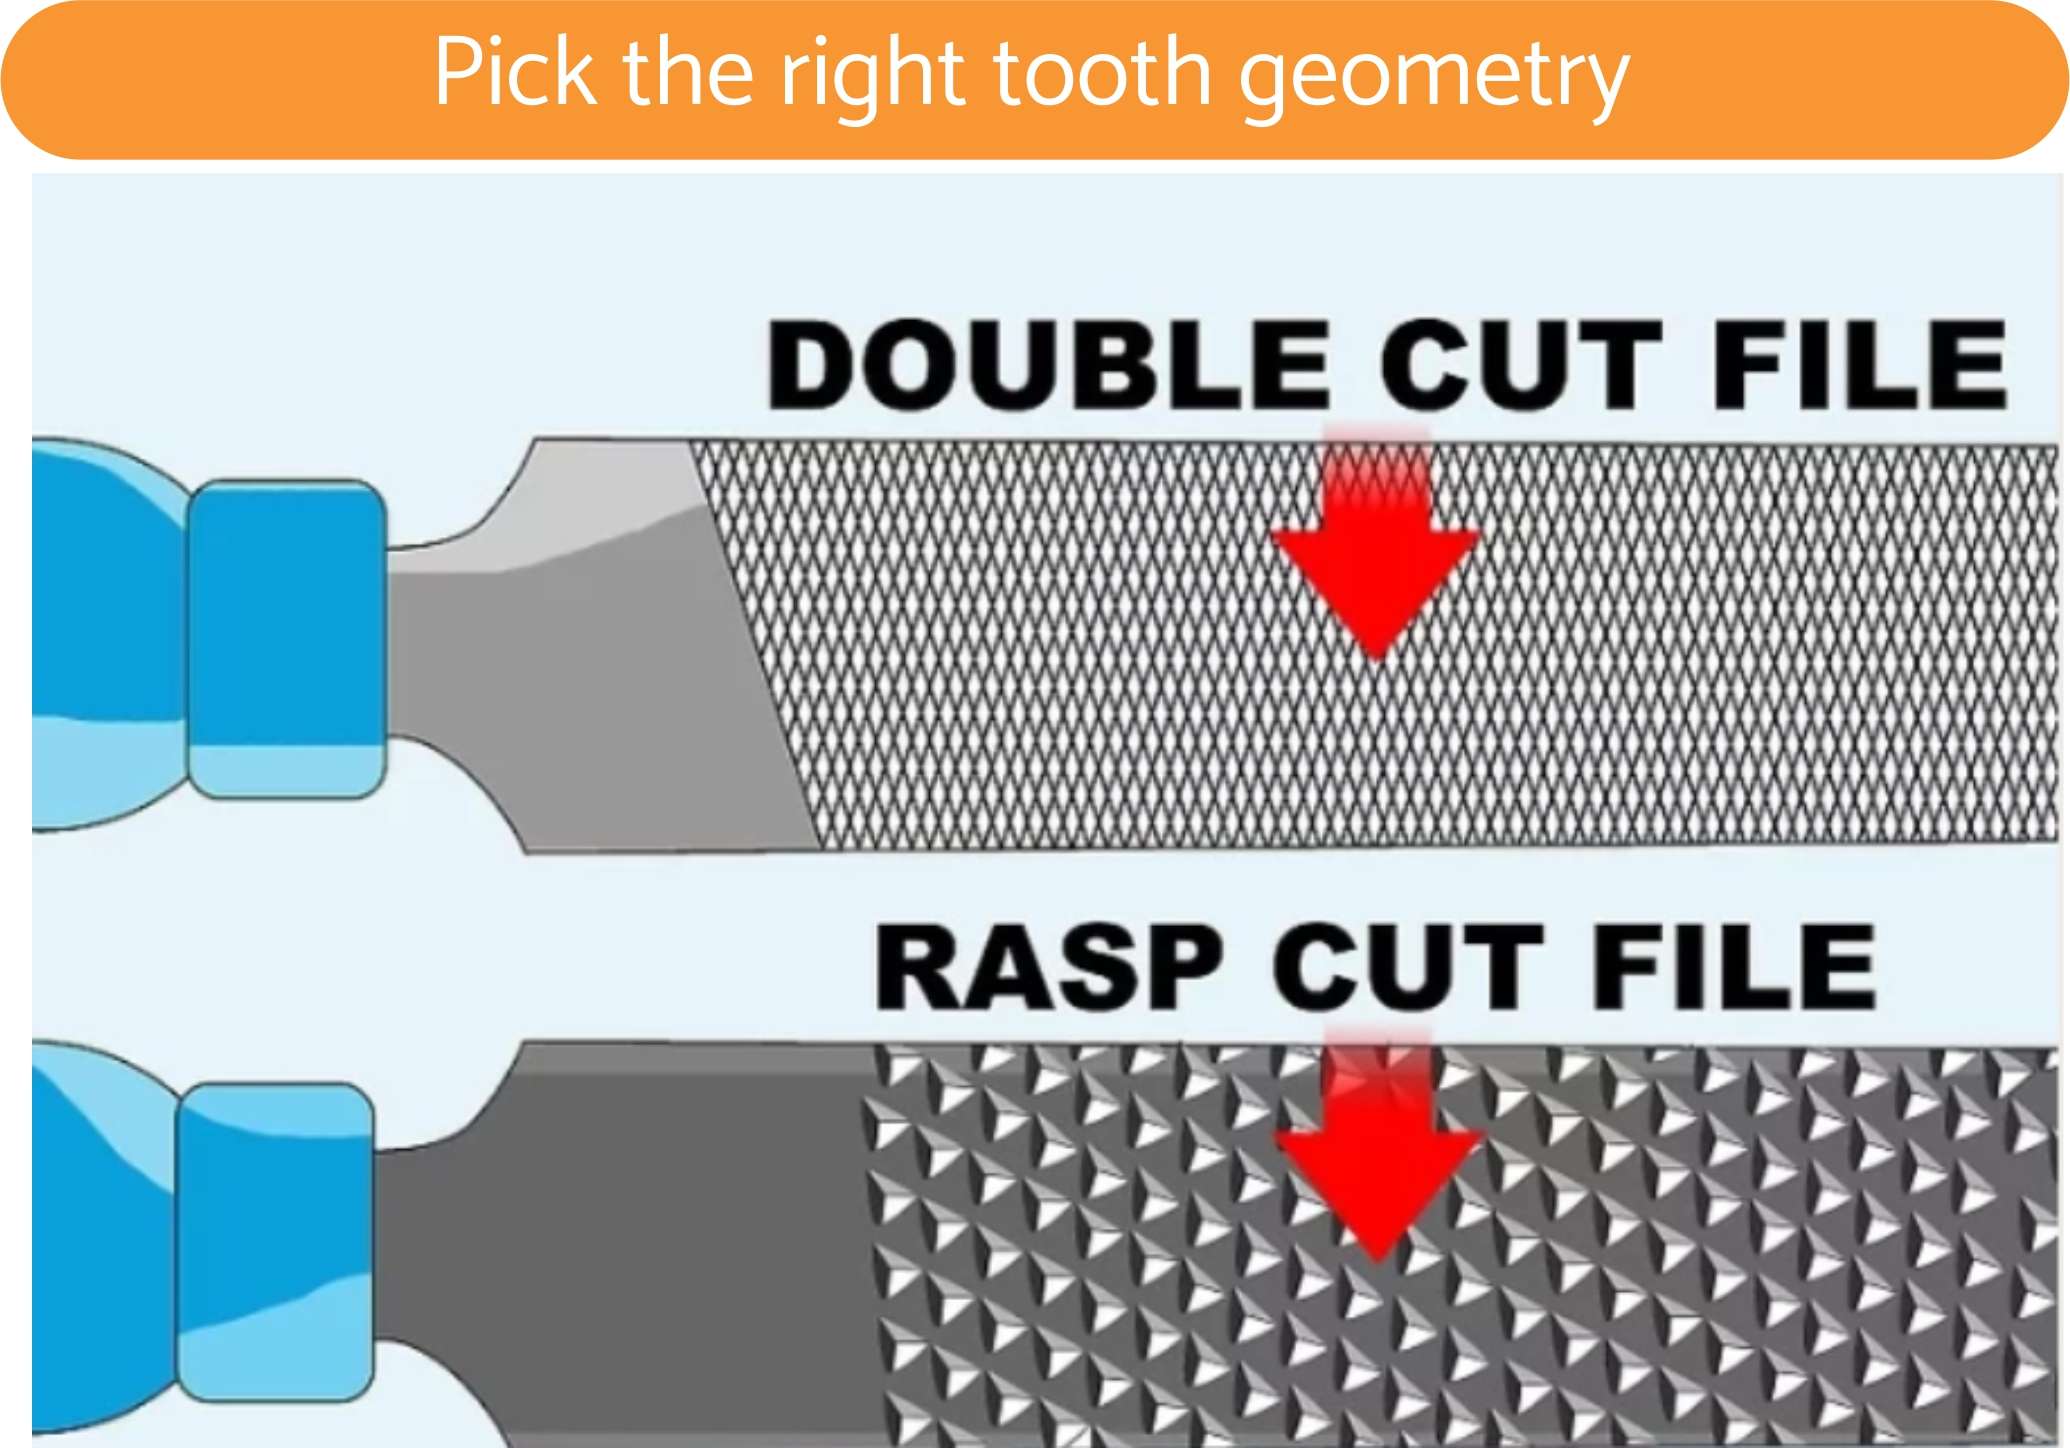 Pick rge right tooth geometry